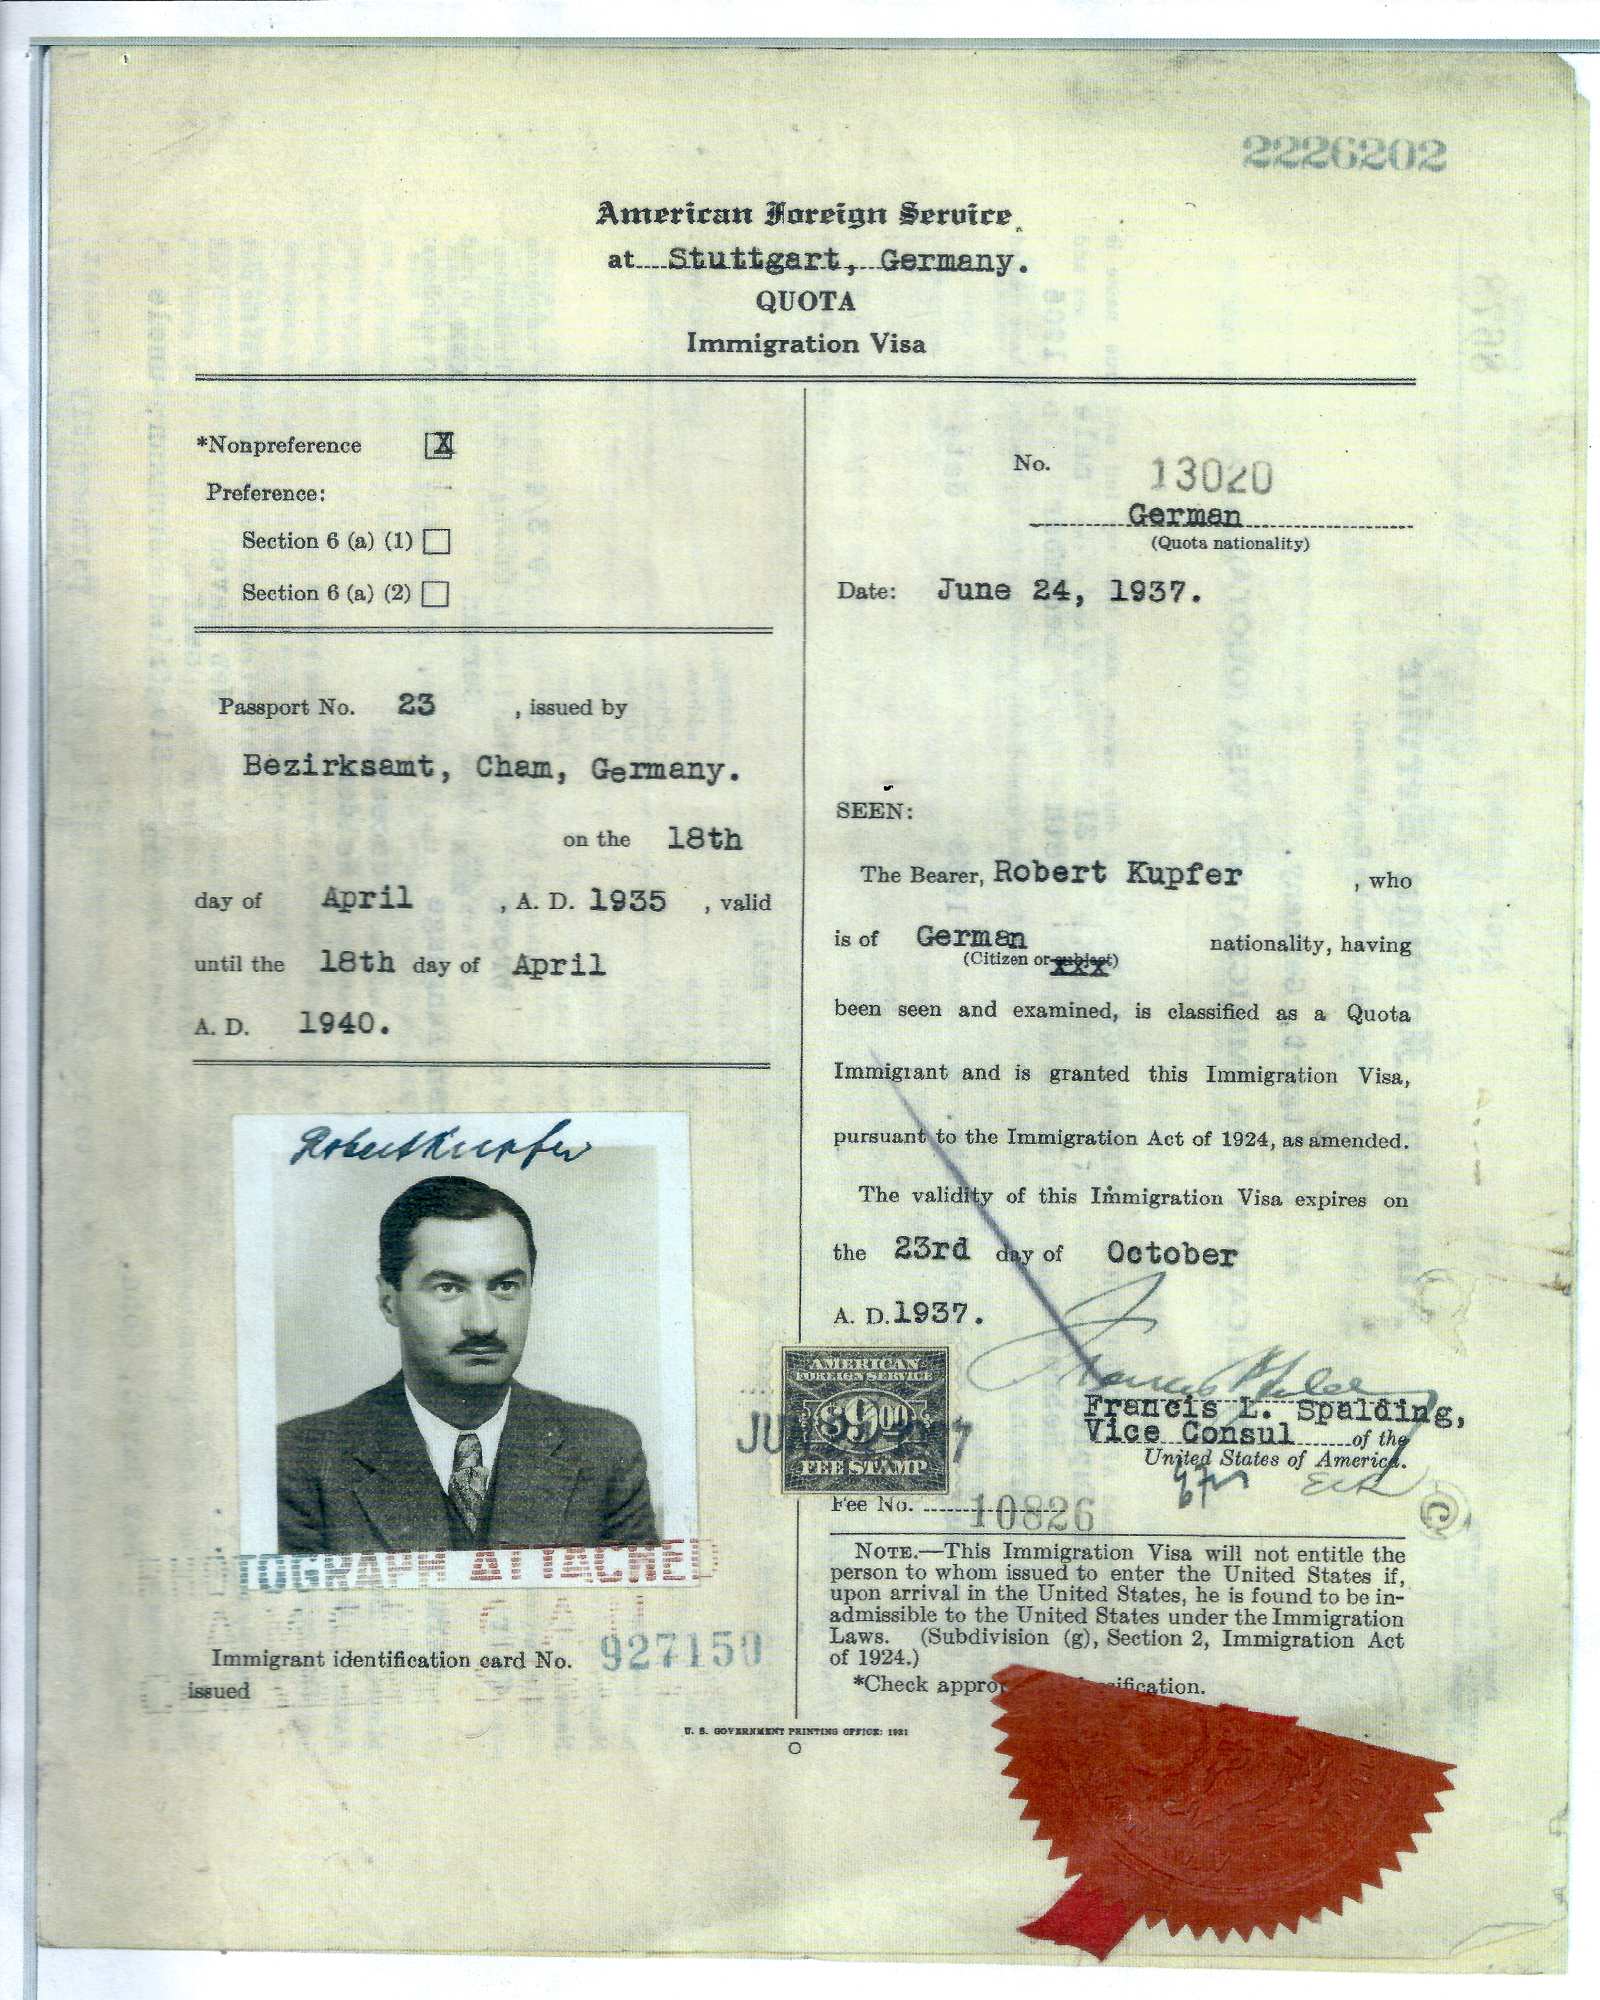 Dad's U.S. immigration visa.